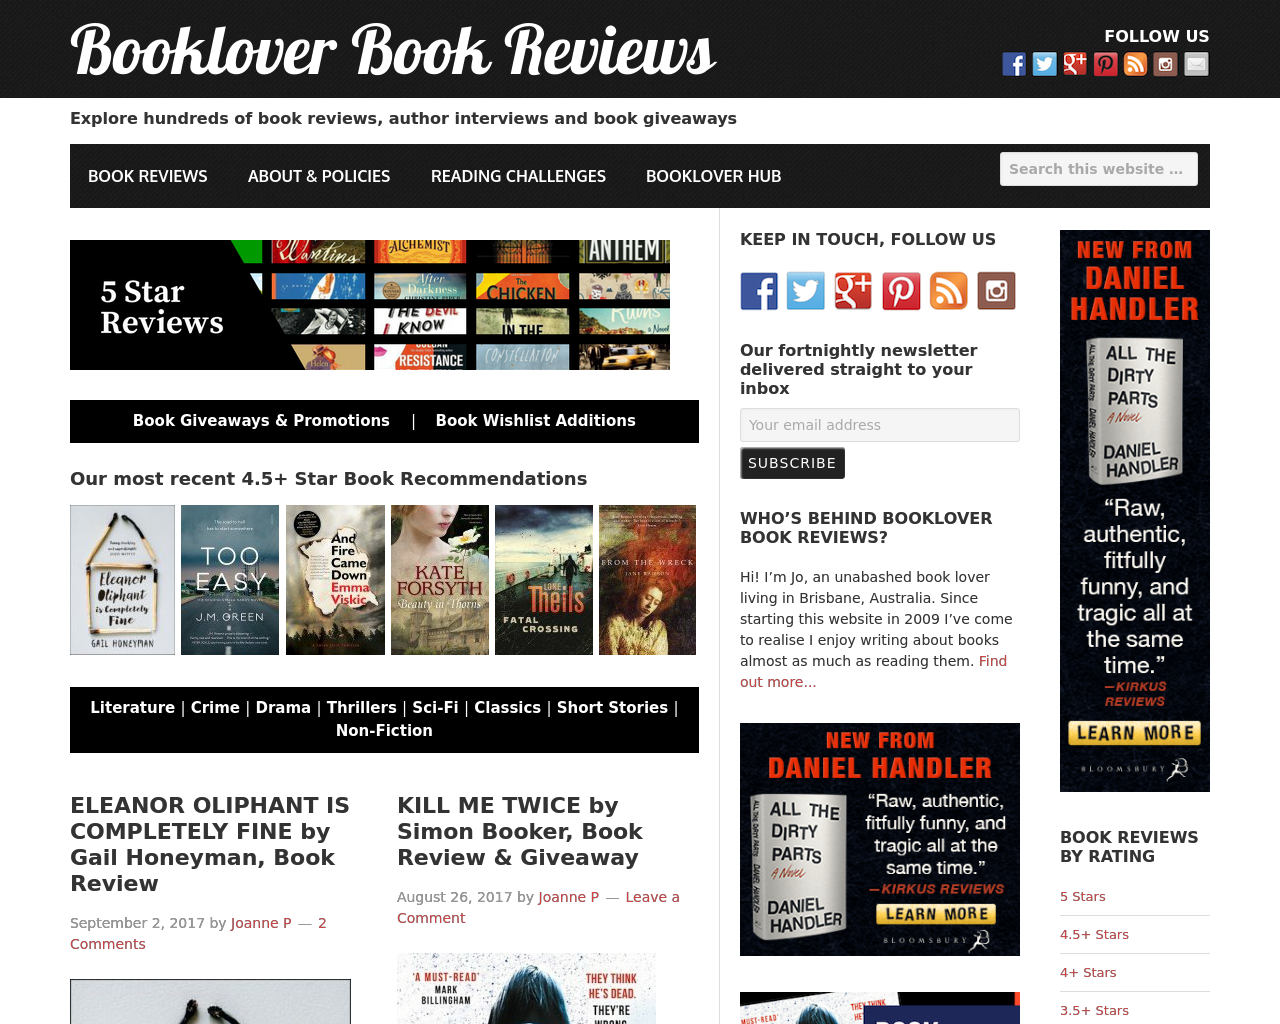 Booklover-Book-Reviews-Advertising-Reviews-Pricing